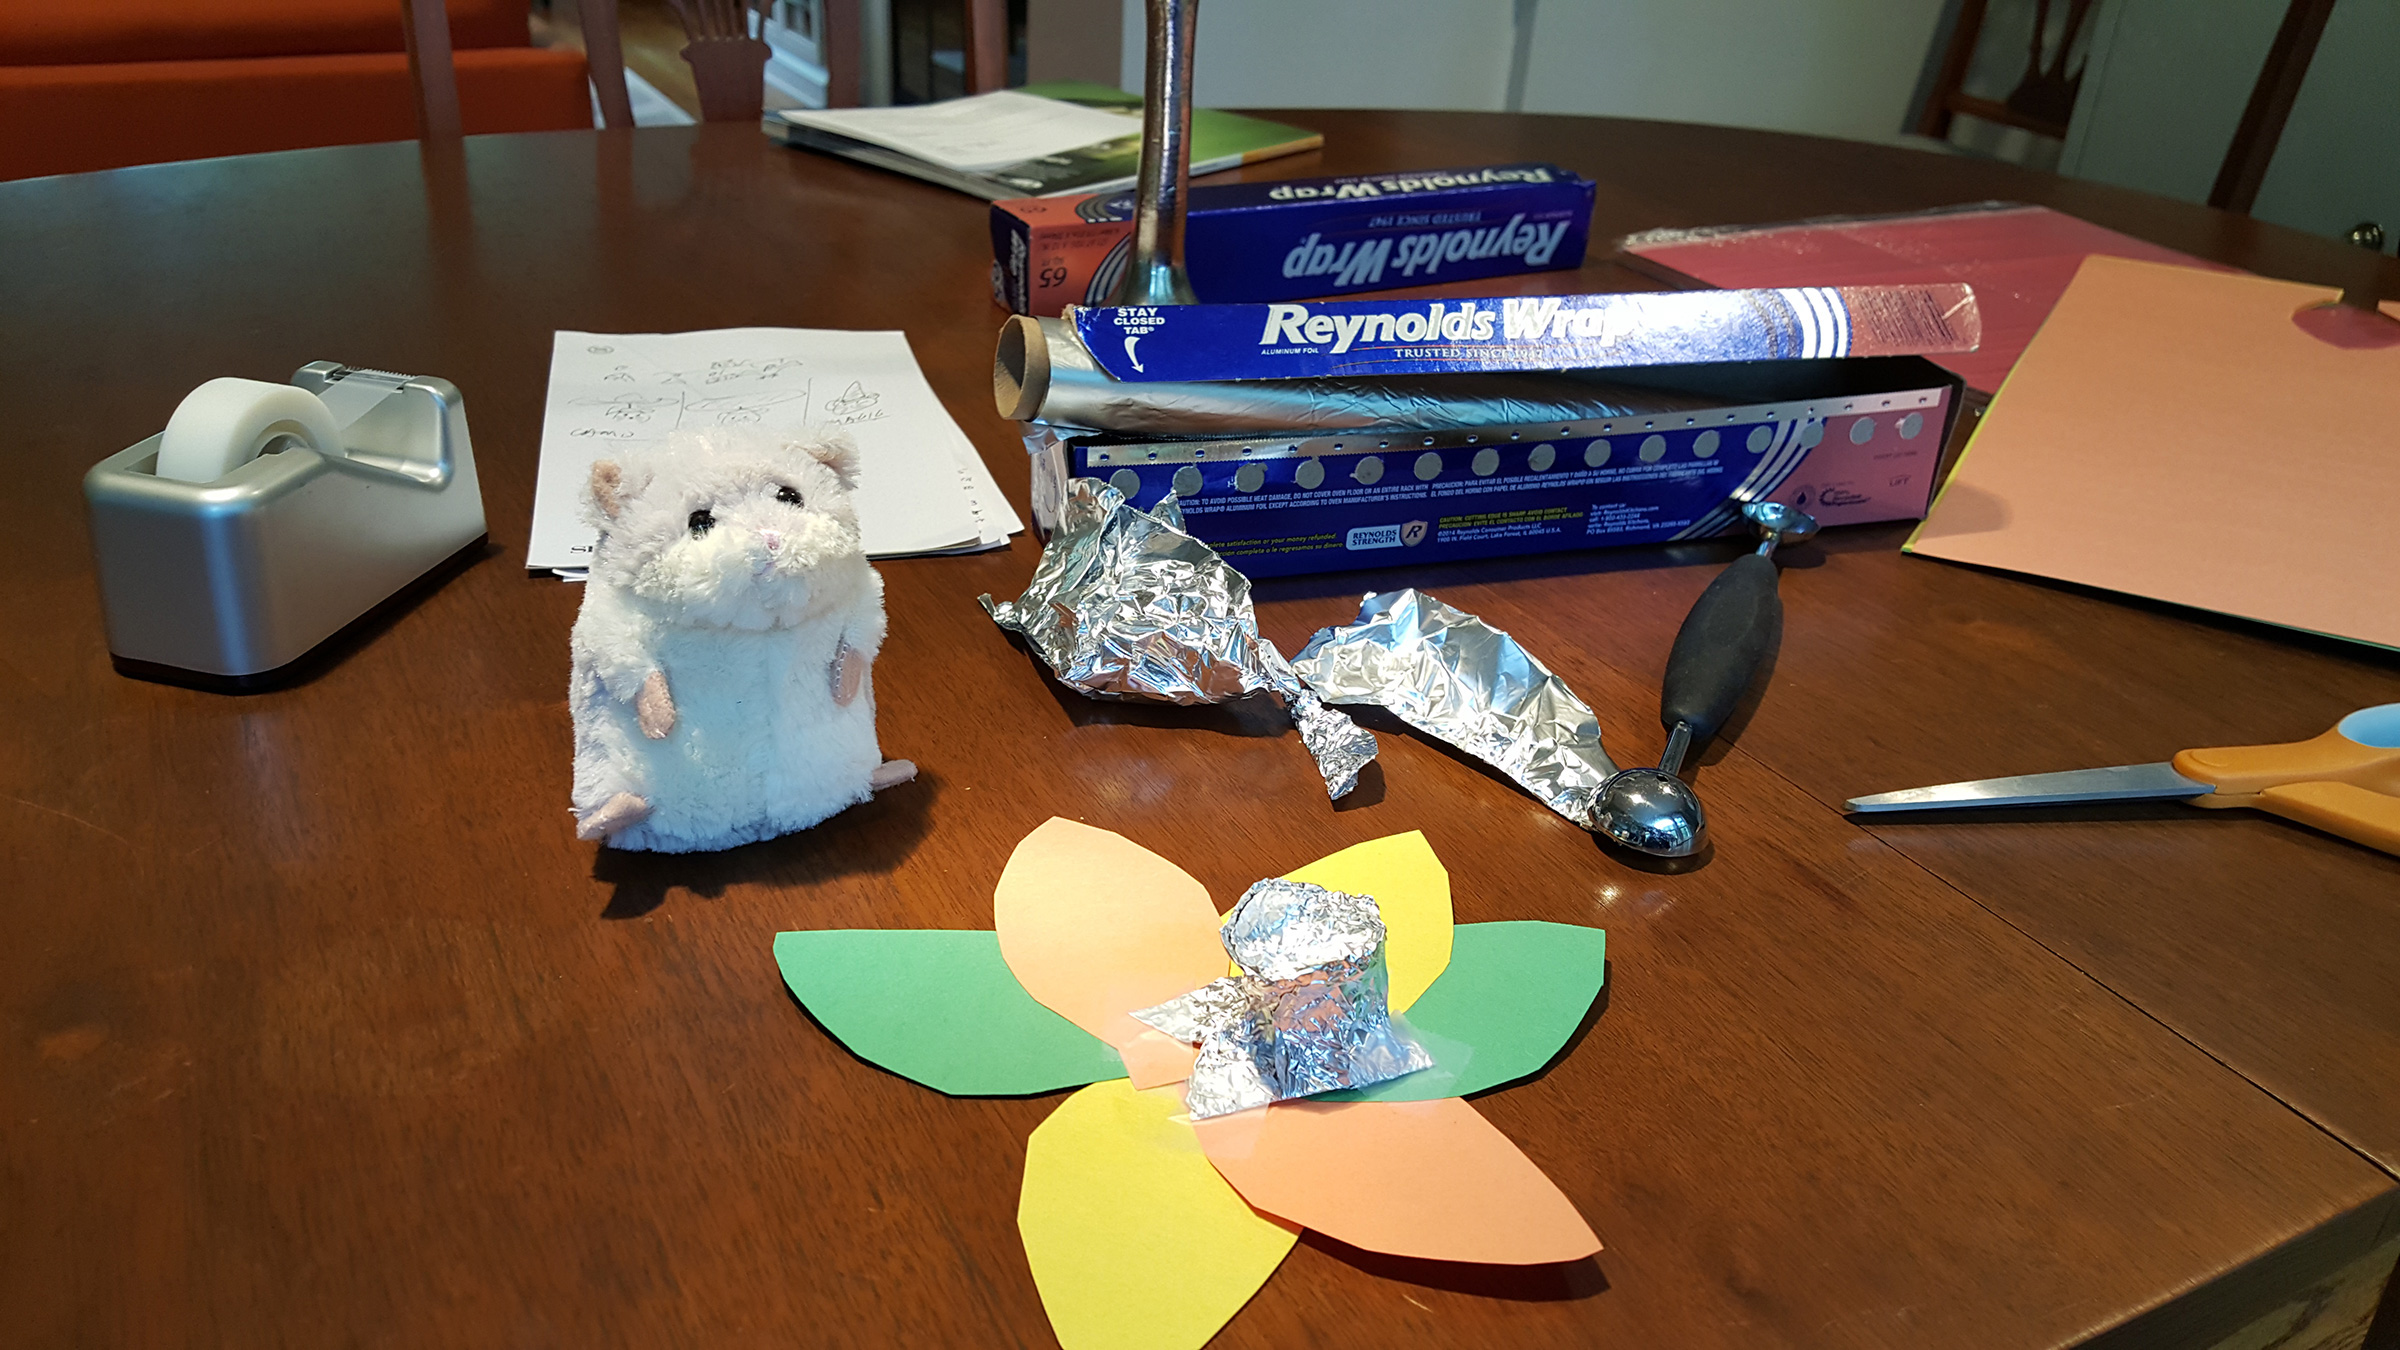 The assignment was to quickly build an initial prototype out of nothing but aluminum foil, tape, and construction paper. A model was selected to represent our user.